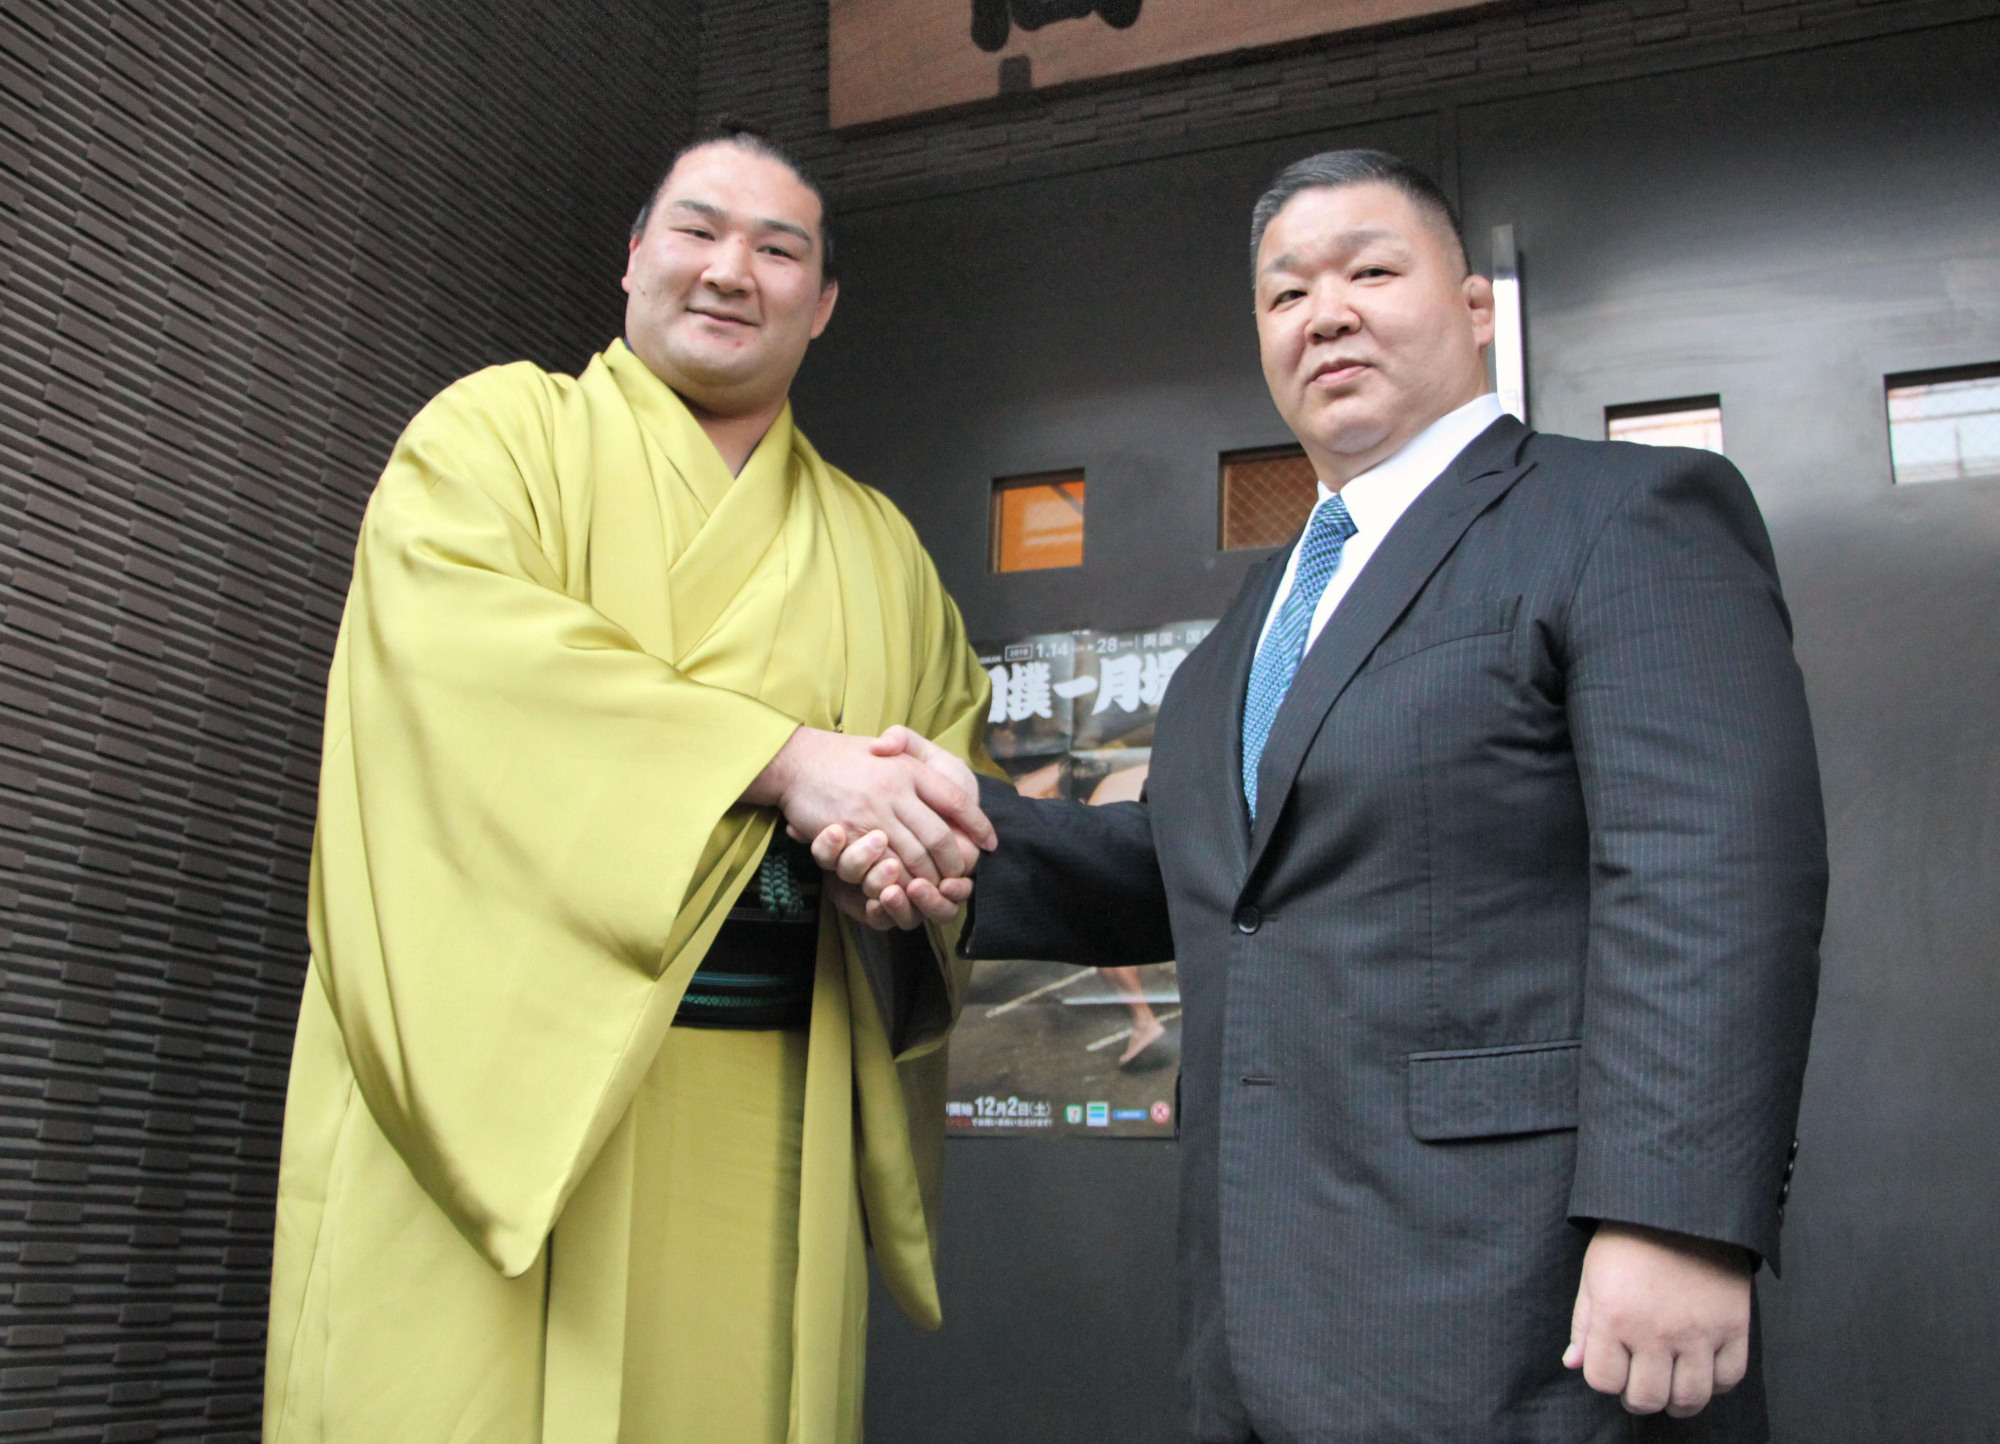 Former makuuchi wrestler Akinoshima (right), now known as Takadagawa stablemaster, shakes hands with Ryuden on Dec. 26, 2017, in Koto Ward. | KYODO